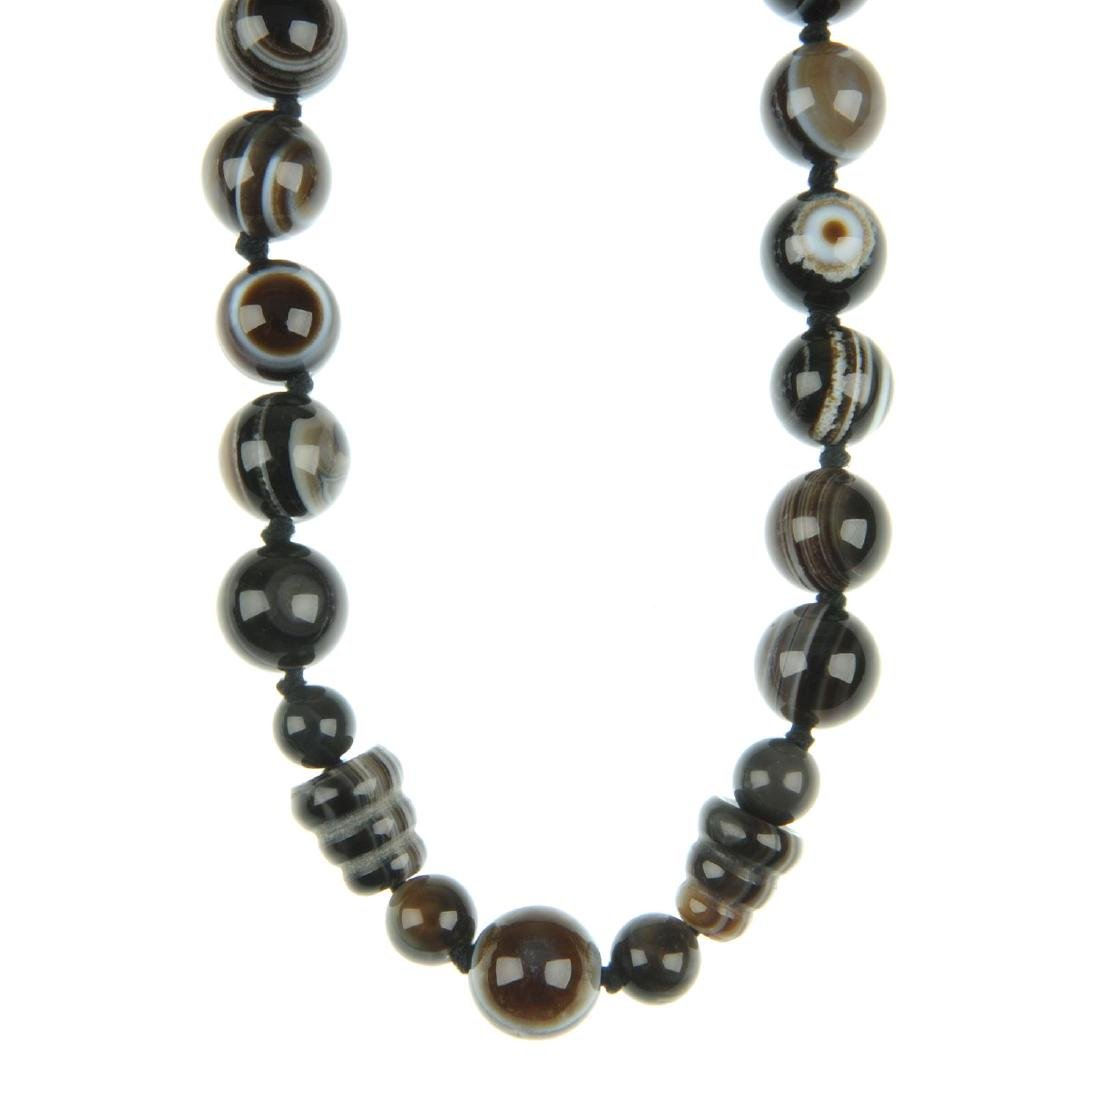 A banded agate bead necklace. The necklace of spherical